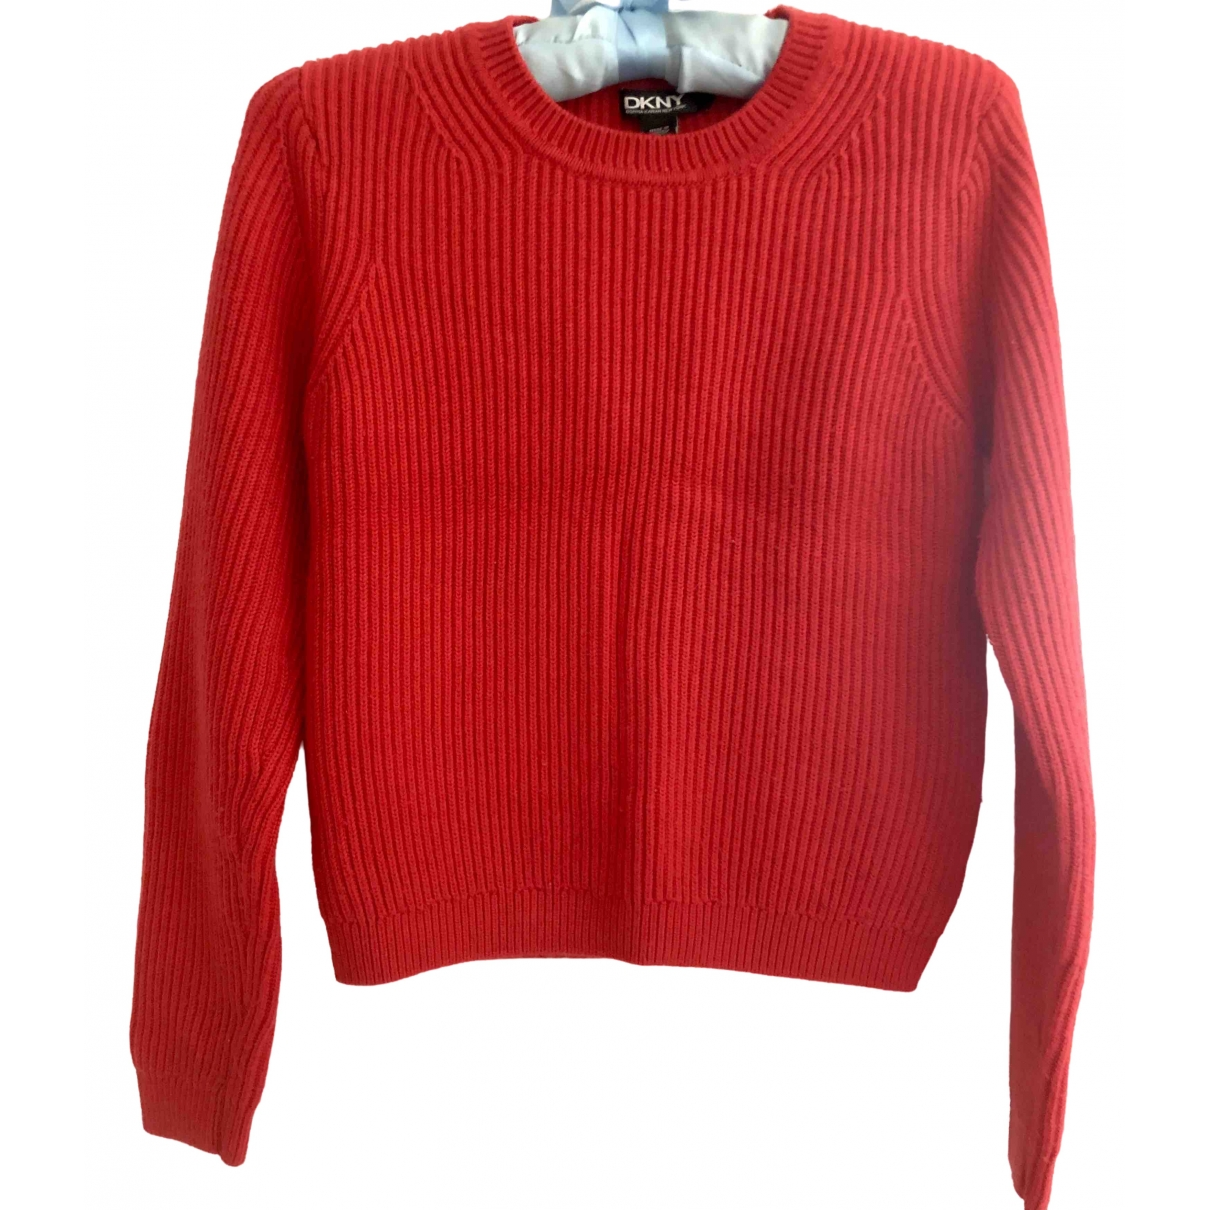 Dkny \N Red Wool Knitwear for Women S International